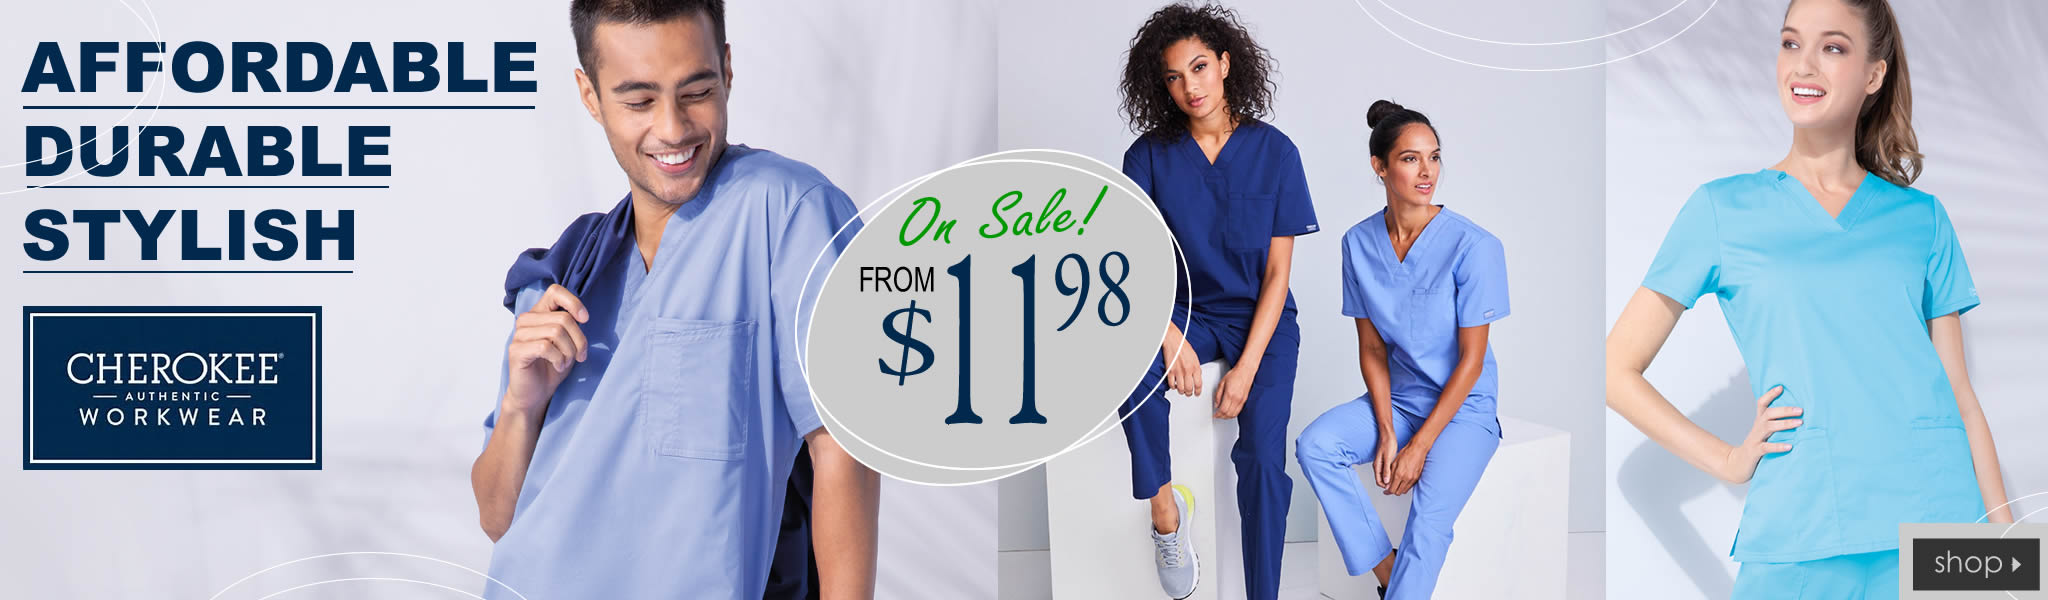 authentic cherokee workwear scrubs - from $11.98